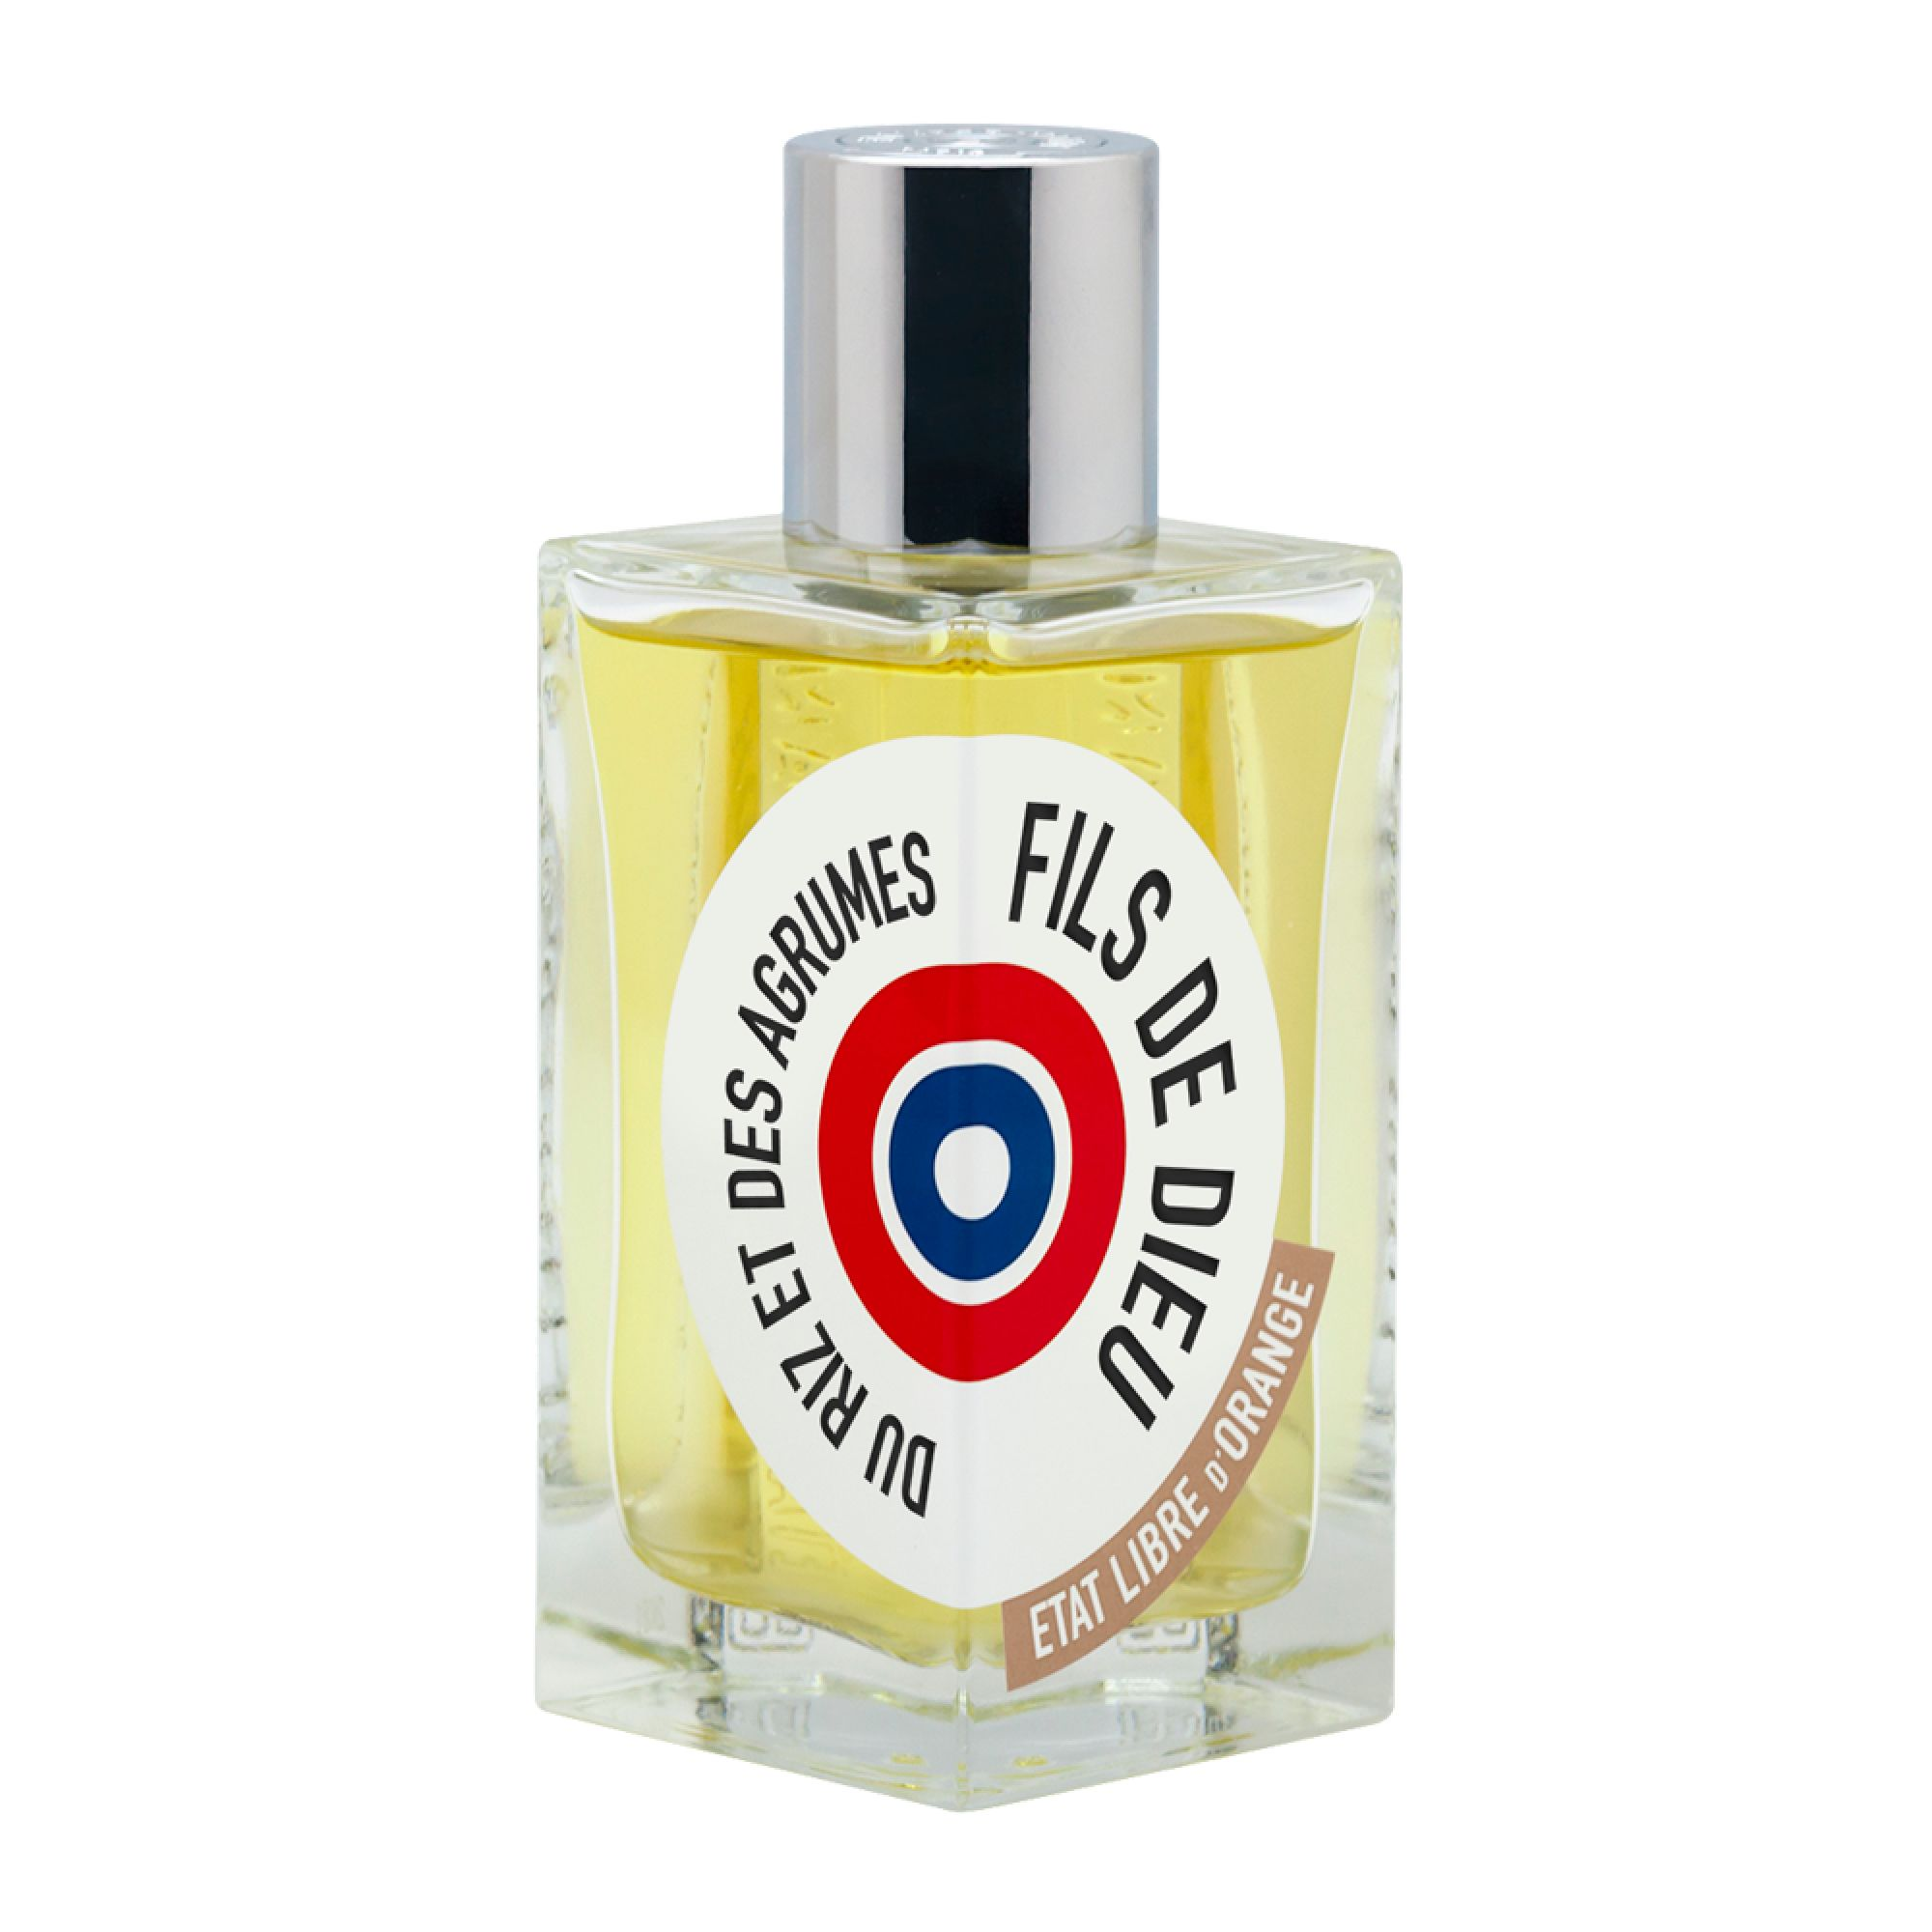 Etat Libre d'Orange Etat Libre d'Orange Fils de Dieu Eau de Parfum 50ml